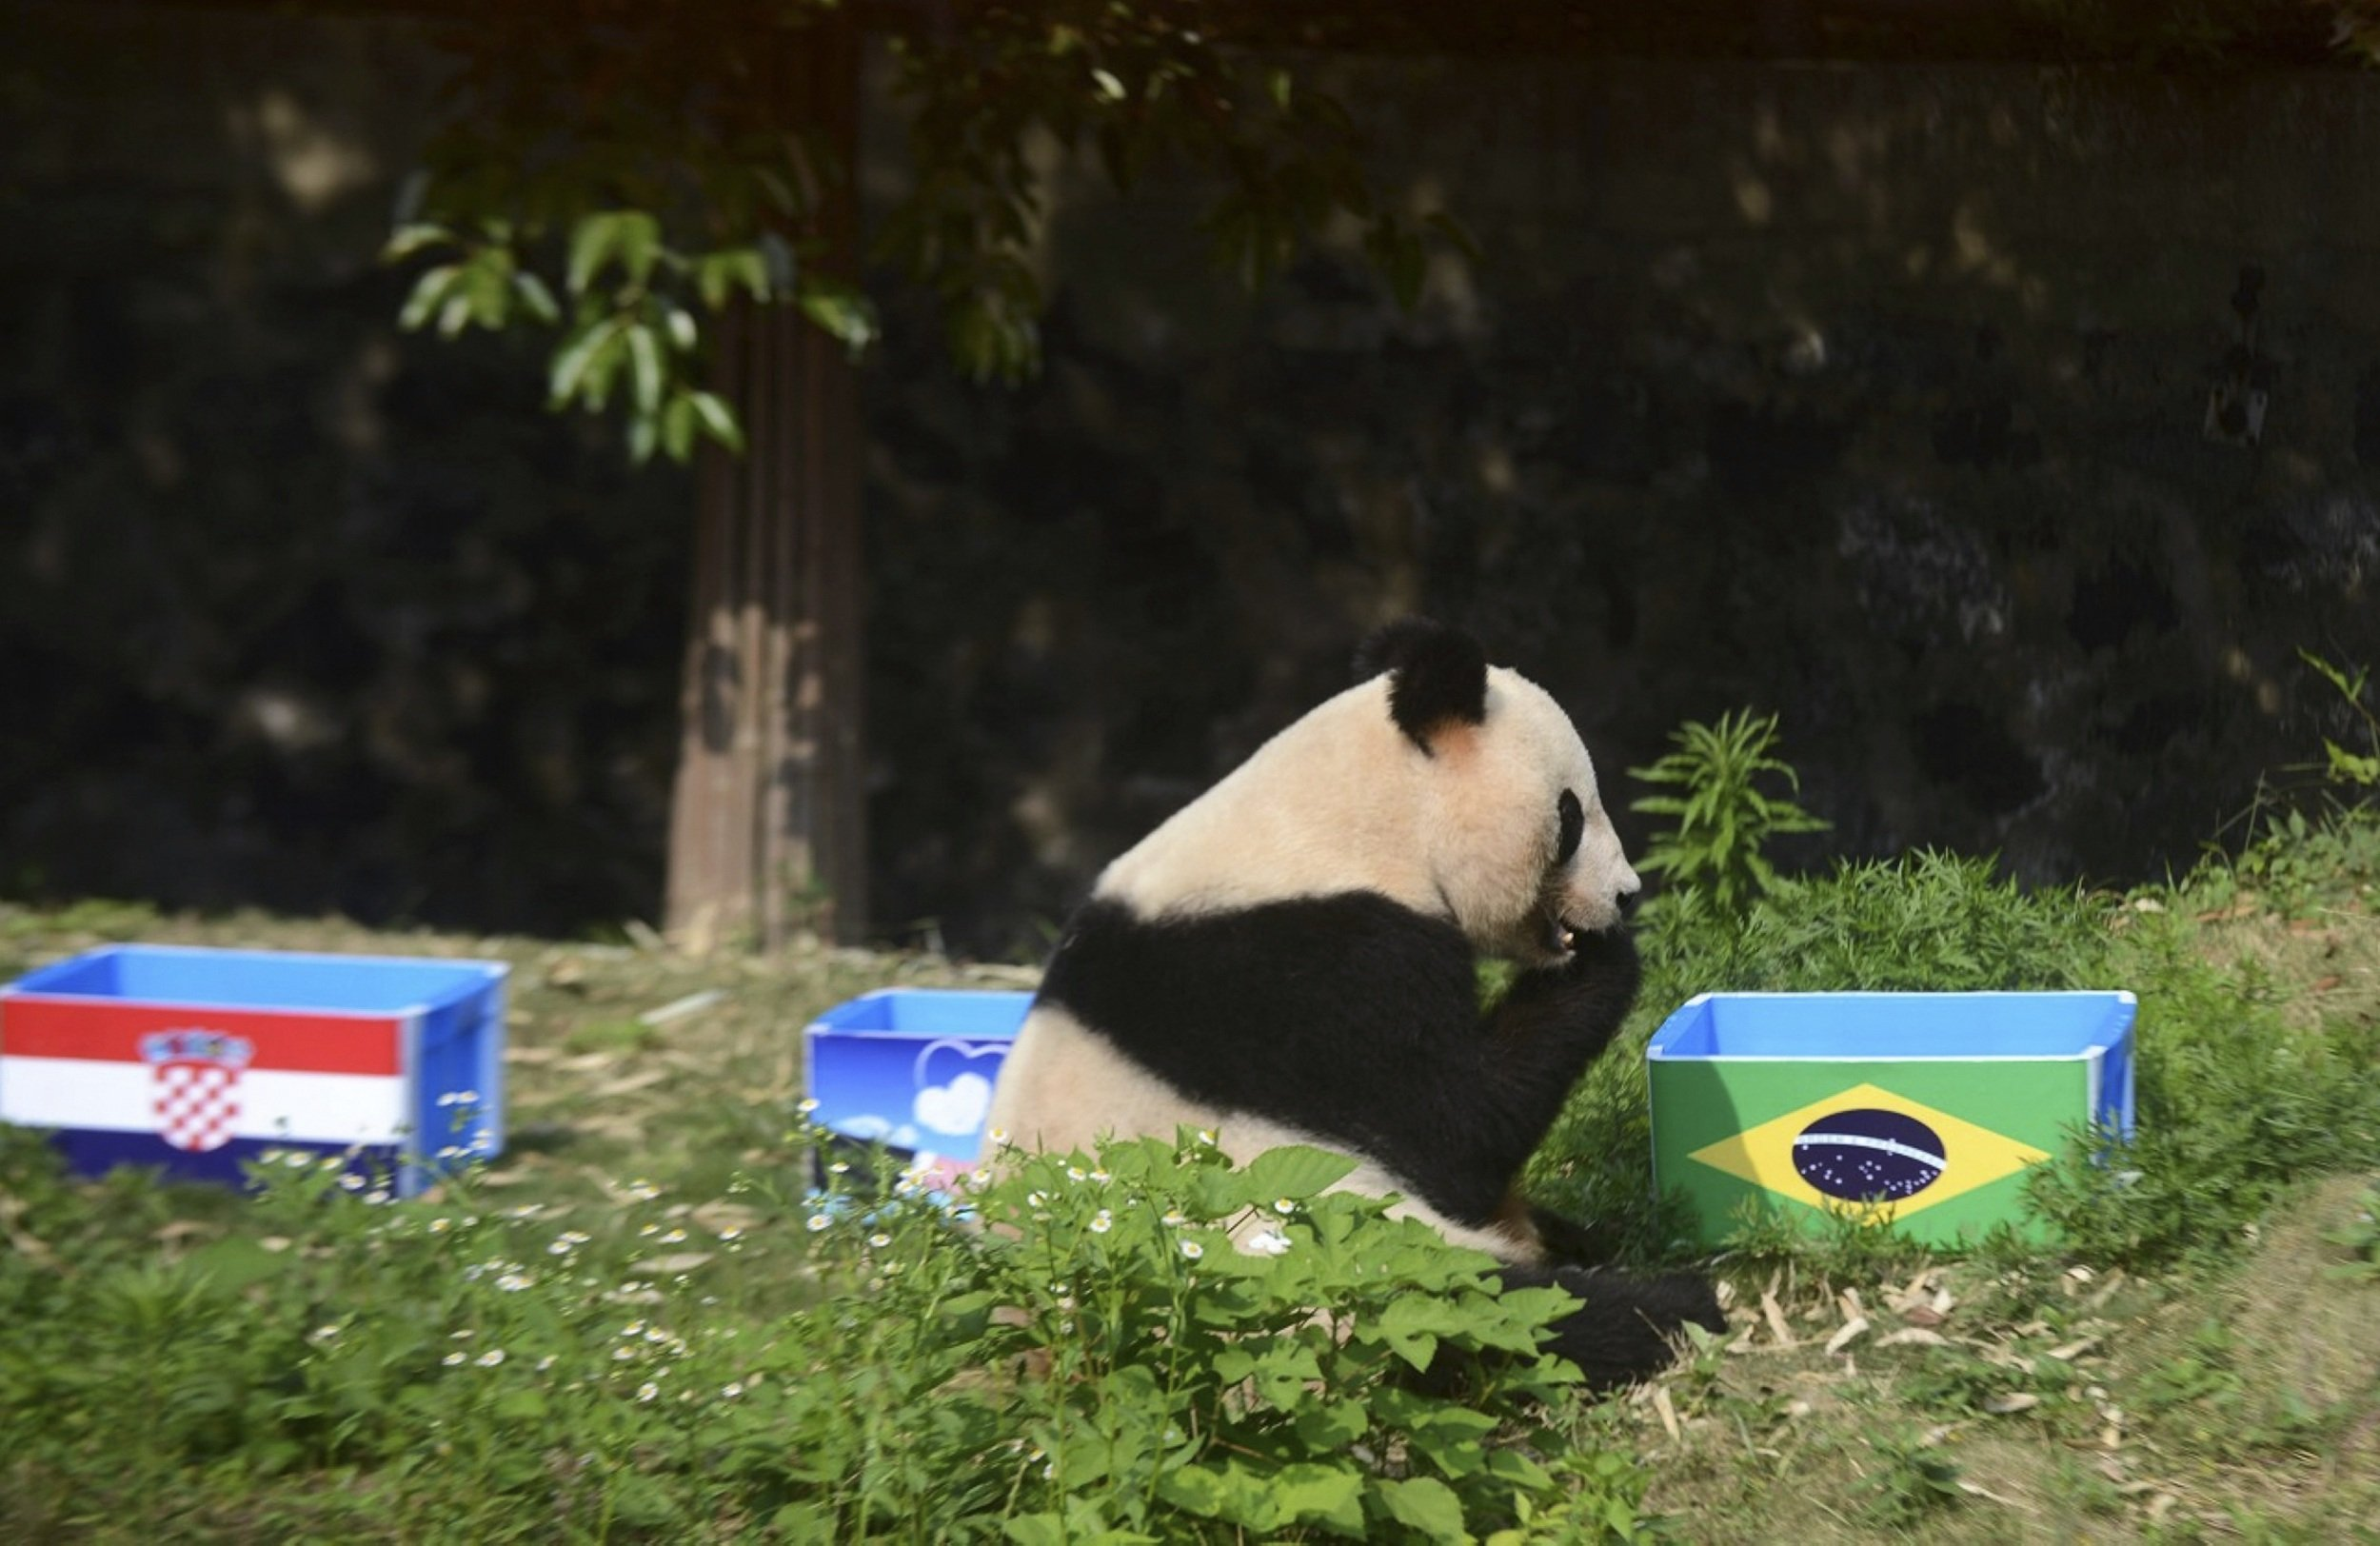 Giant panda Ying Mei sits next to a box of food with the Brazilian flag on it, during an event called  Panda Predicts World Cup Results , in Yangzhou, China on June 12, 2014.